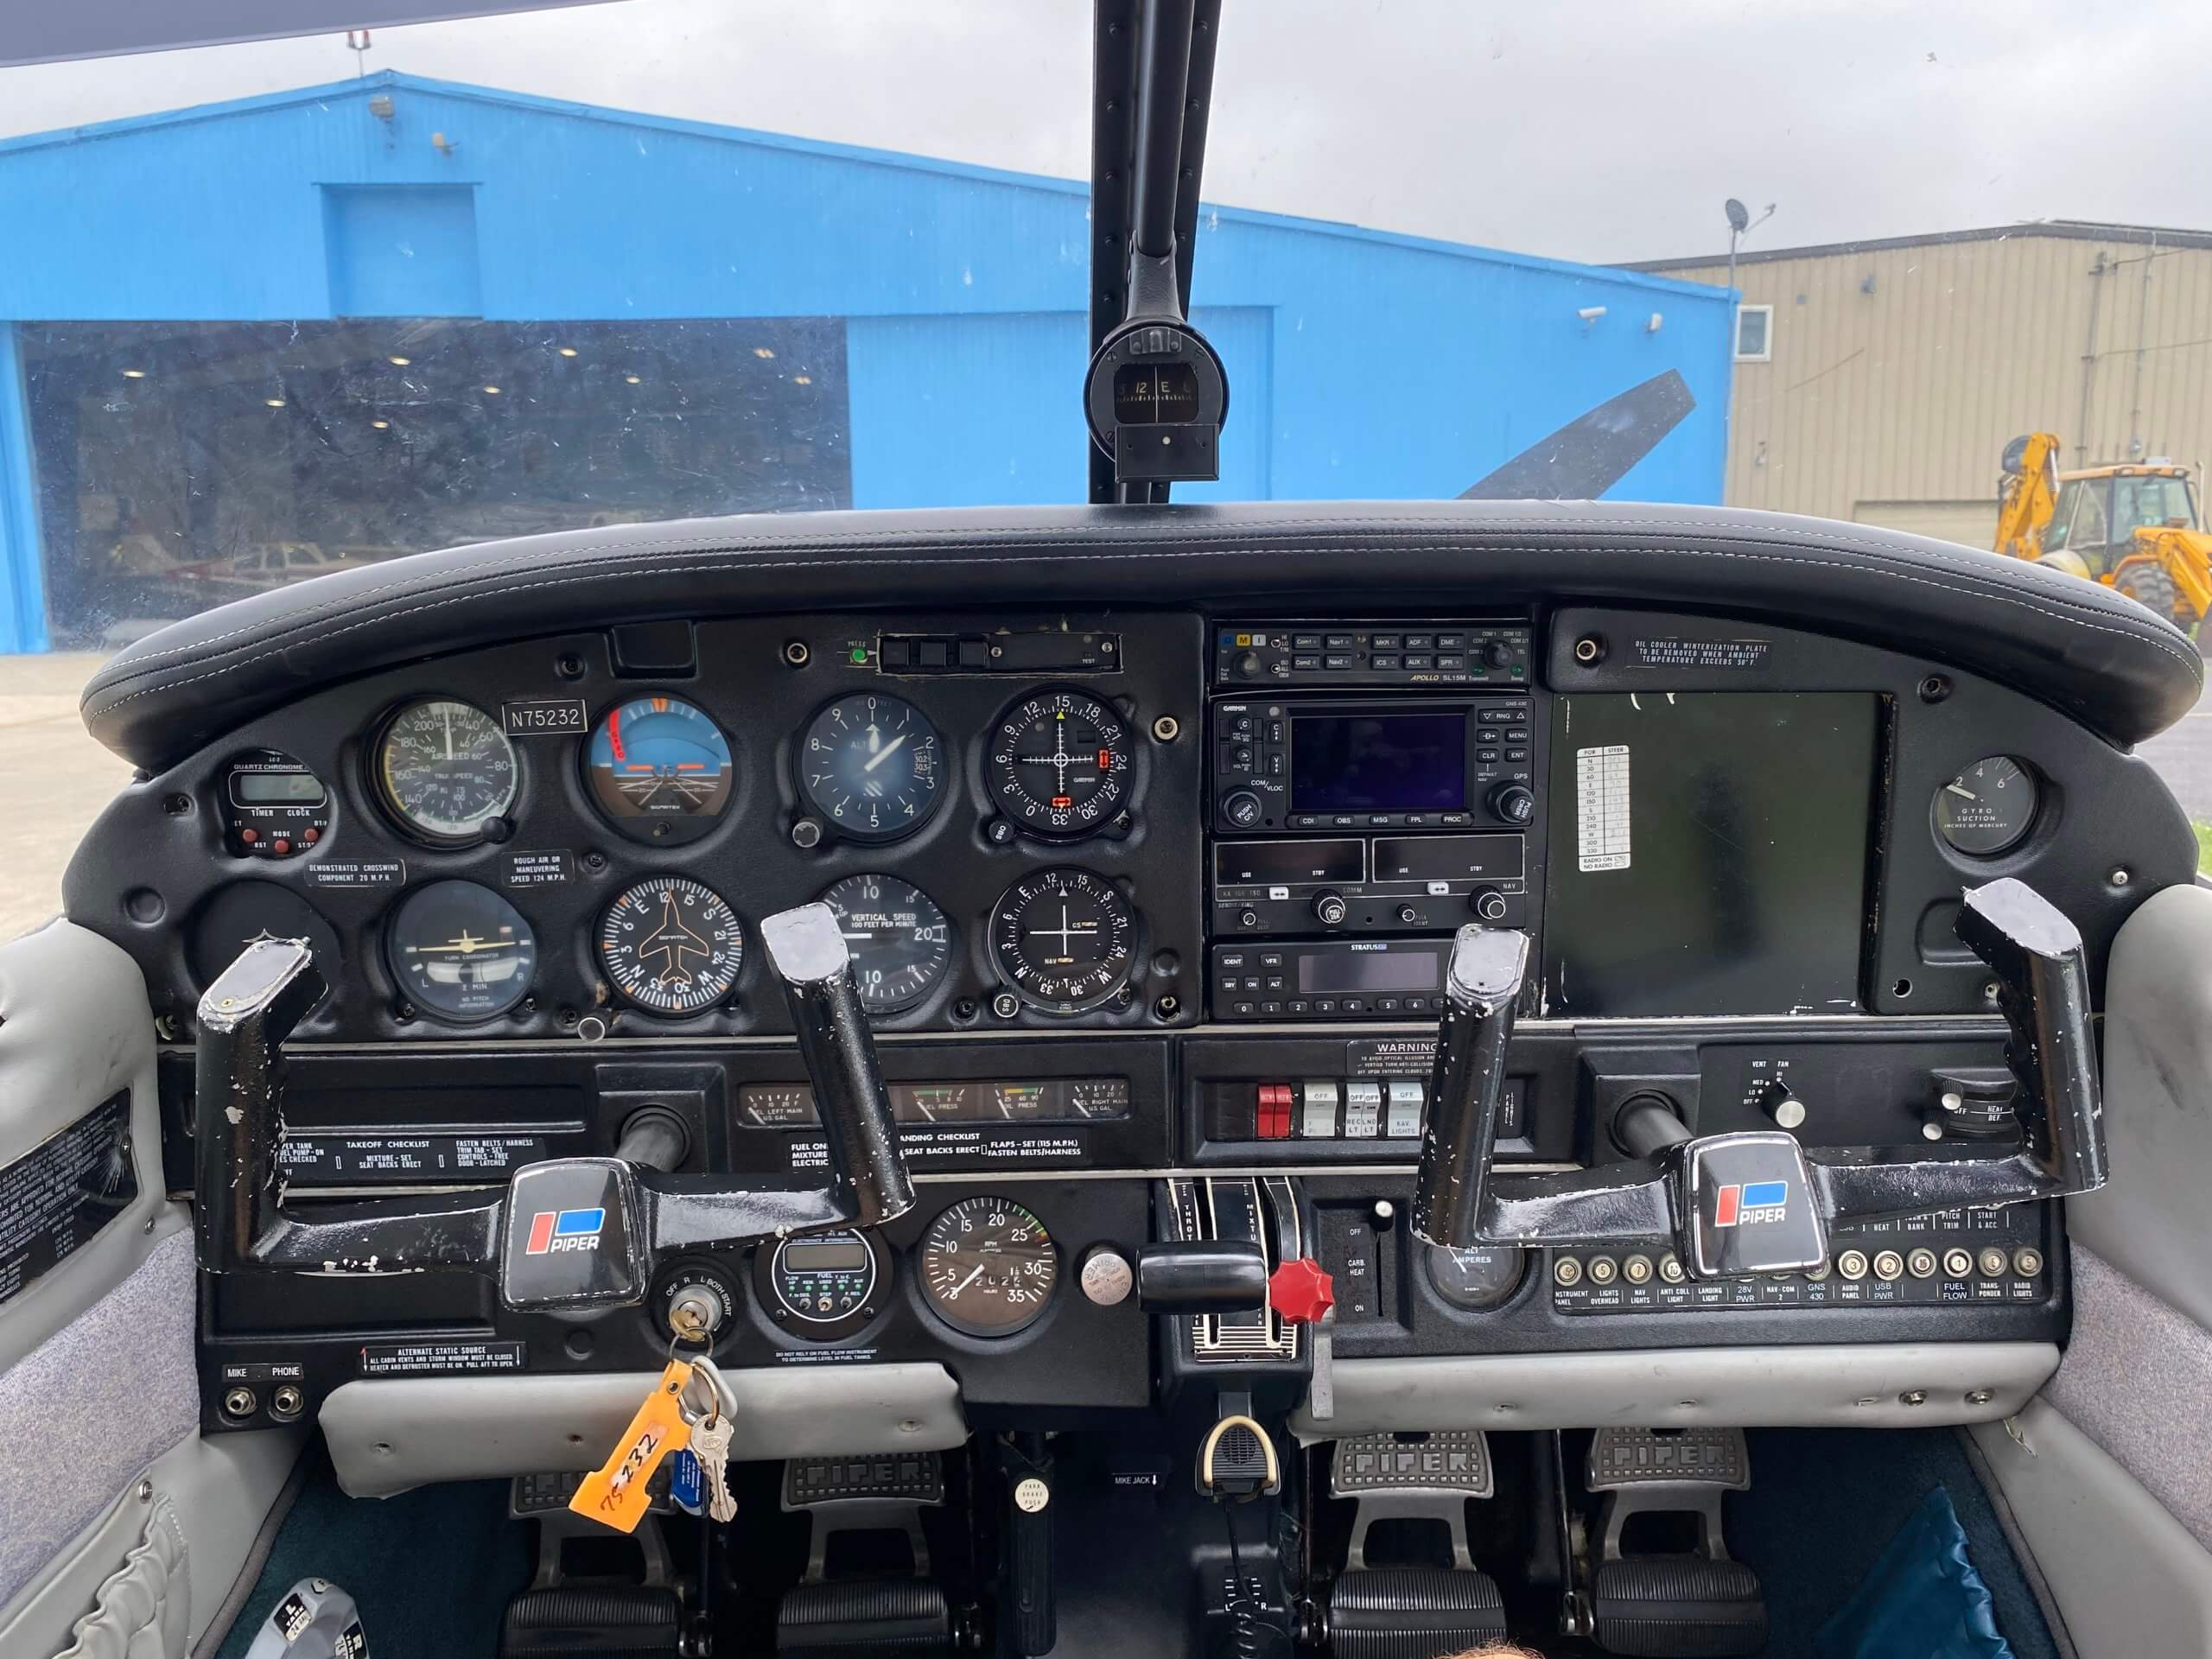 1976 Piper Warrior FOR SALE at Princeton Airport - Contact Jack Nierenberg at 609-658-6042 for details